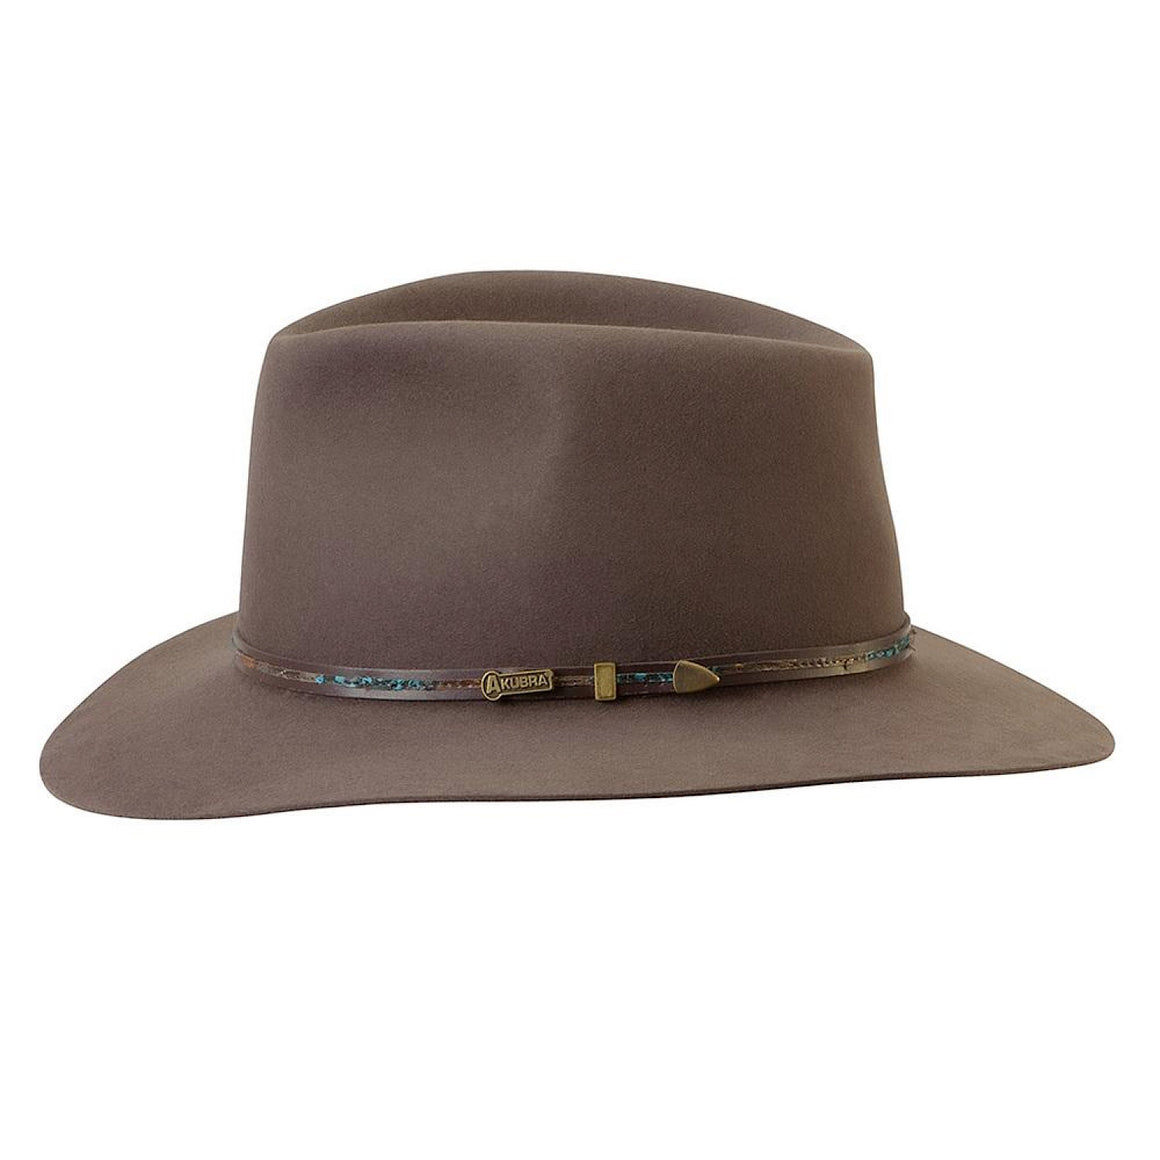 Akubra Leisure Time Regency fawn